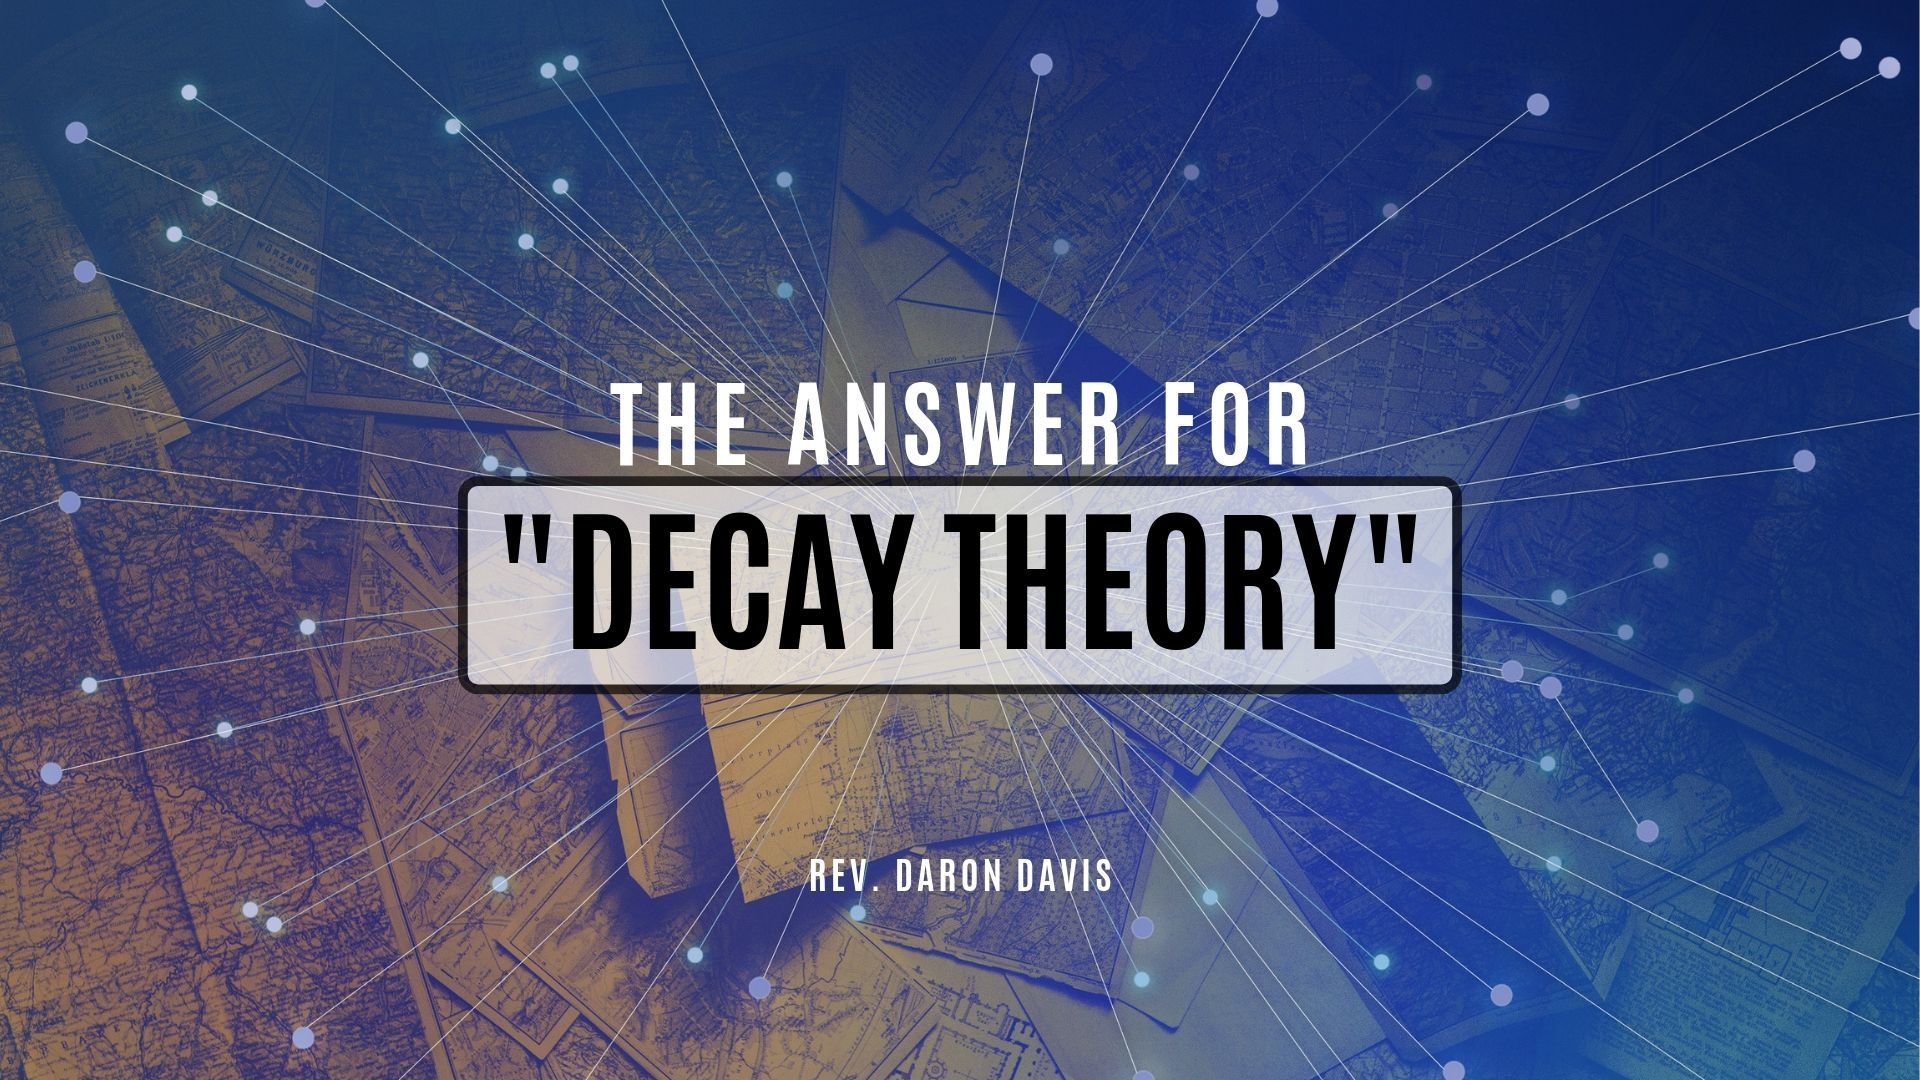 Sunday July 7, 2019 The Answer To Decay Theory - Rev. Daron Davis